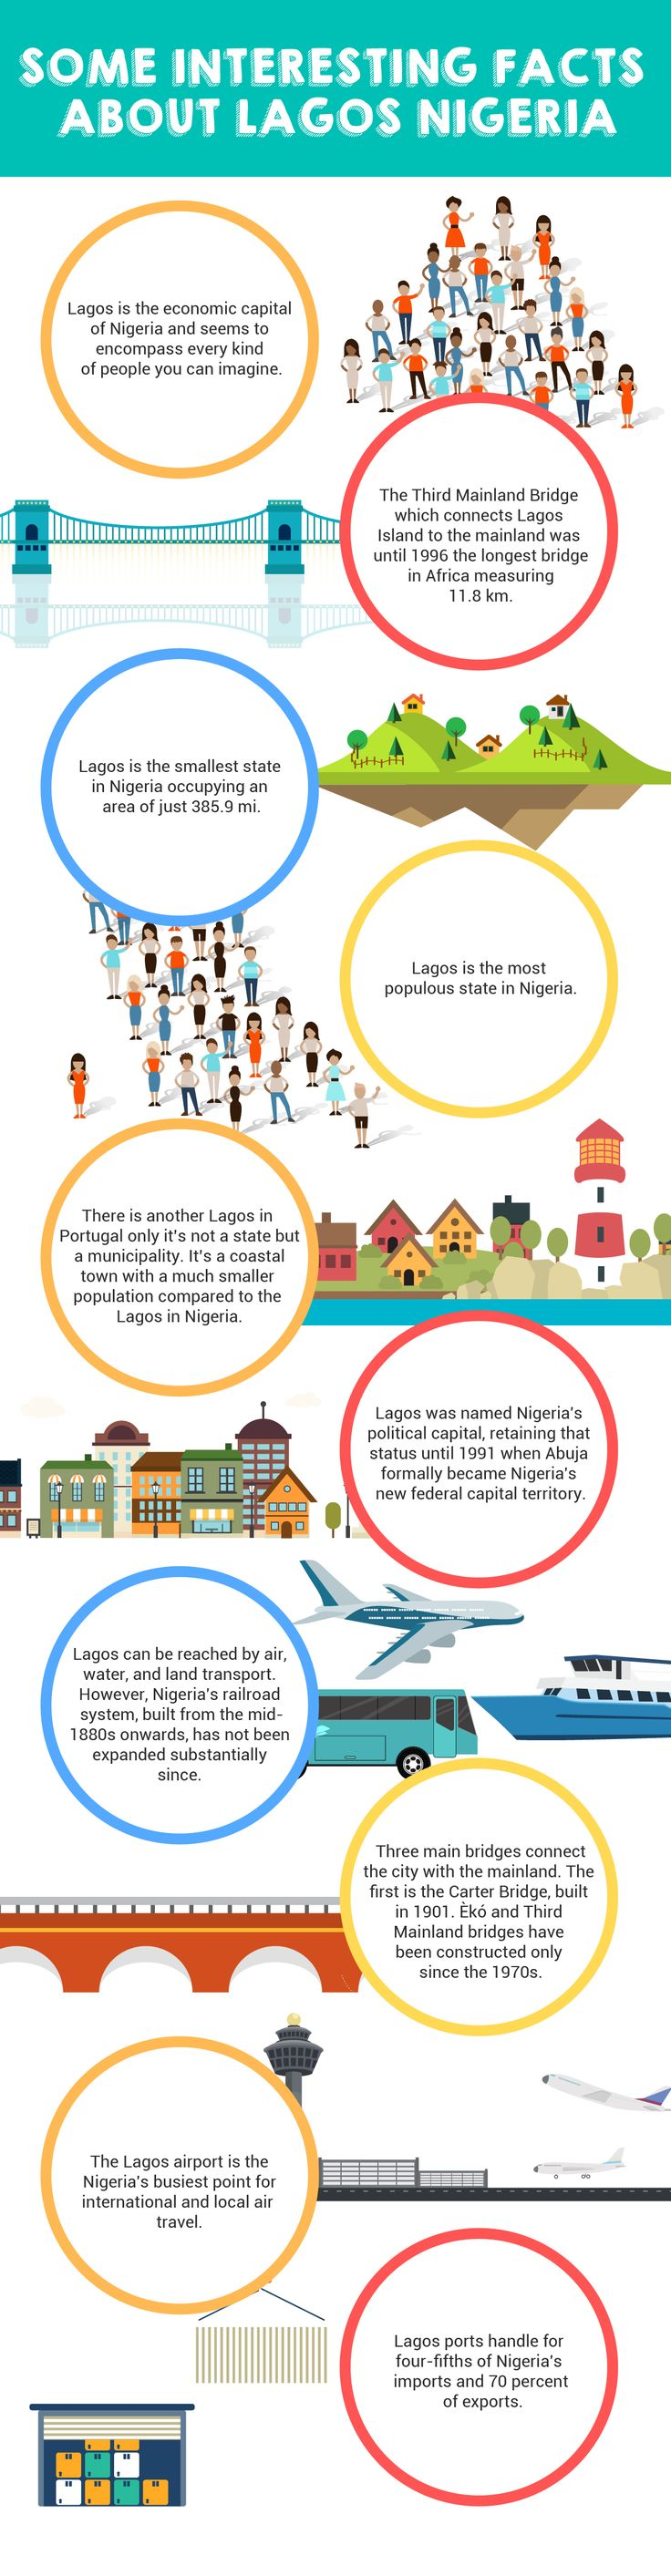 Some Interesting Facts About Lagos Nigeria (Infographic)